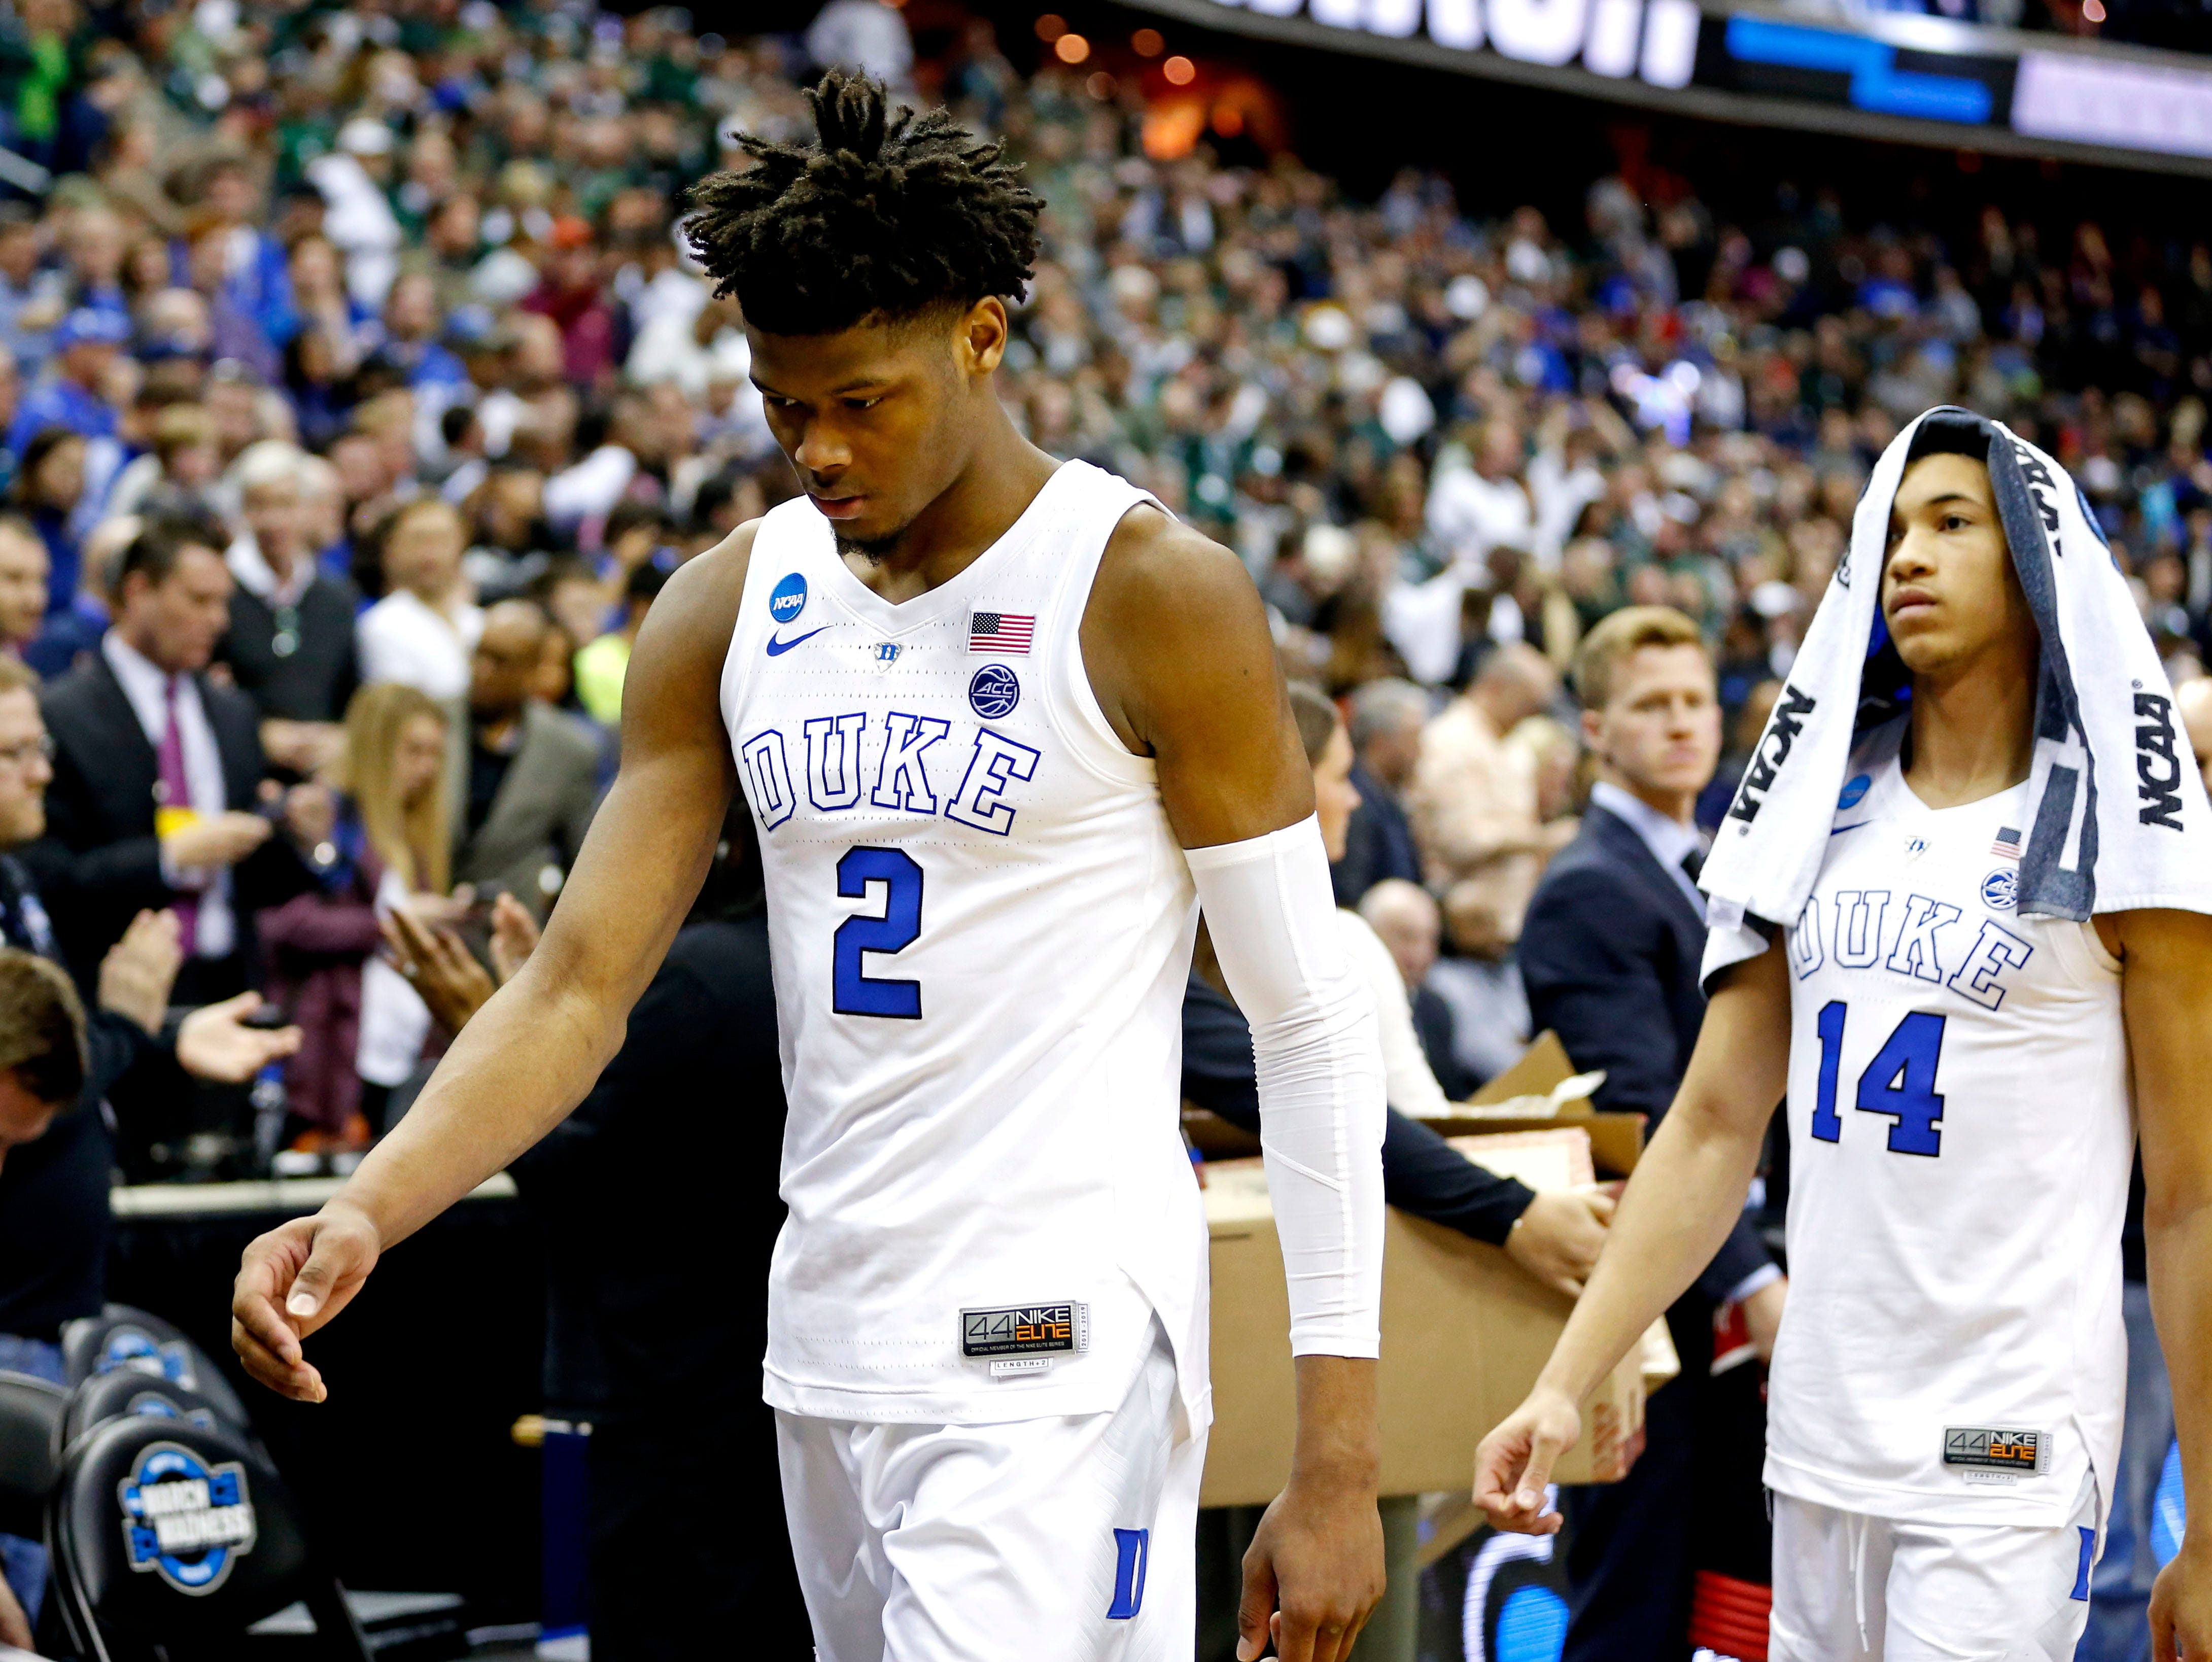 Mar 31, 2019; Washington, DC, USA; Duke Blue Devils forward Cam Reddish (2) and guard Jordan Goldwire (14) walk off the court ofter losing to the Michigan State Spartans in the championship game of the east regional of the 2019 NCAA Tournament at Capital One Arena. Mandatory Credit: Amber Searls-USA TODAY Sports